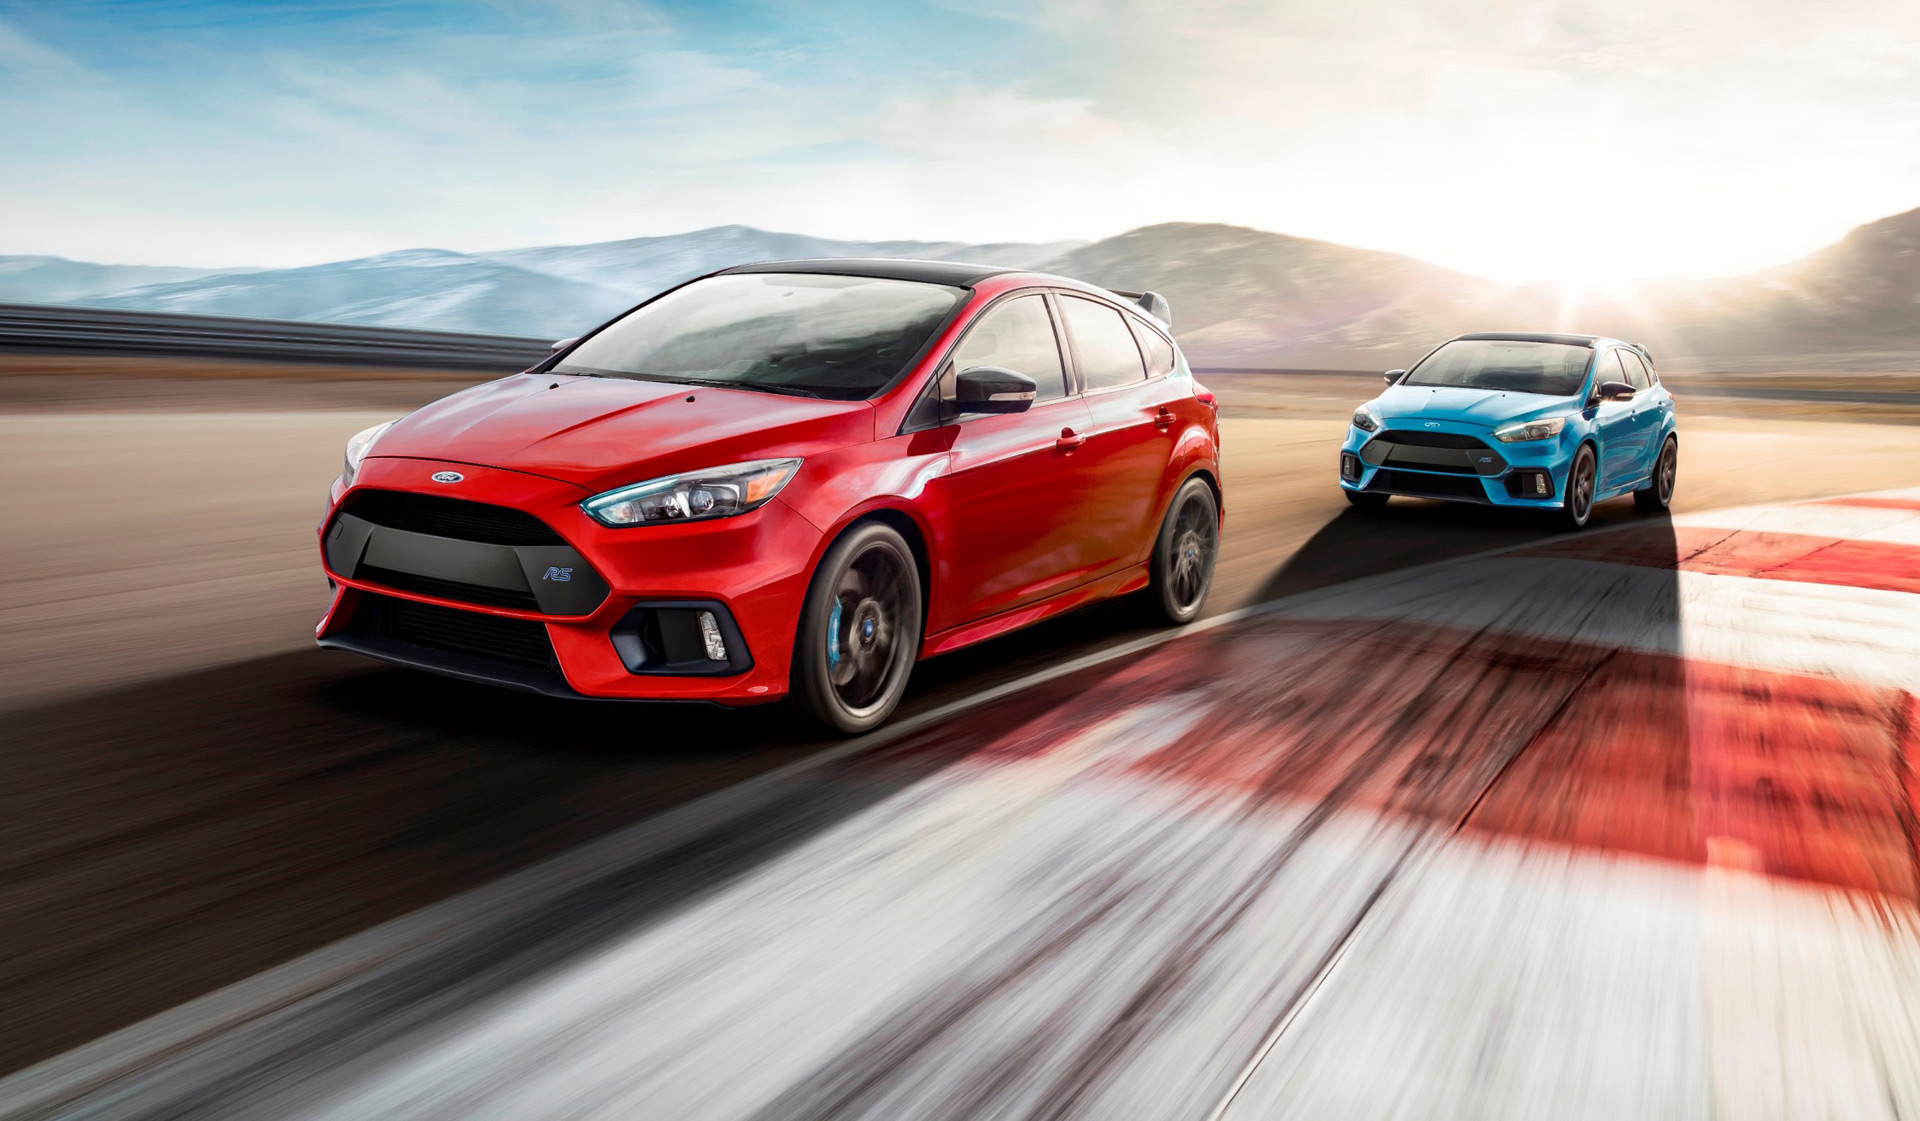 2018 Ford Focus Review, Ratings, Specs, Prices, and Photos